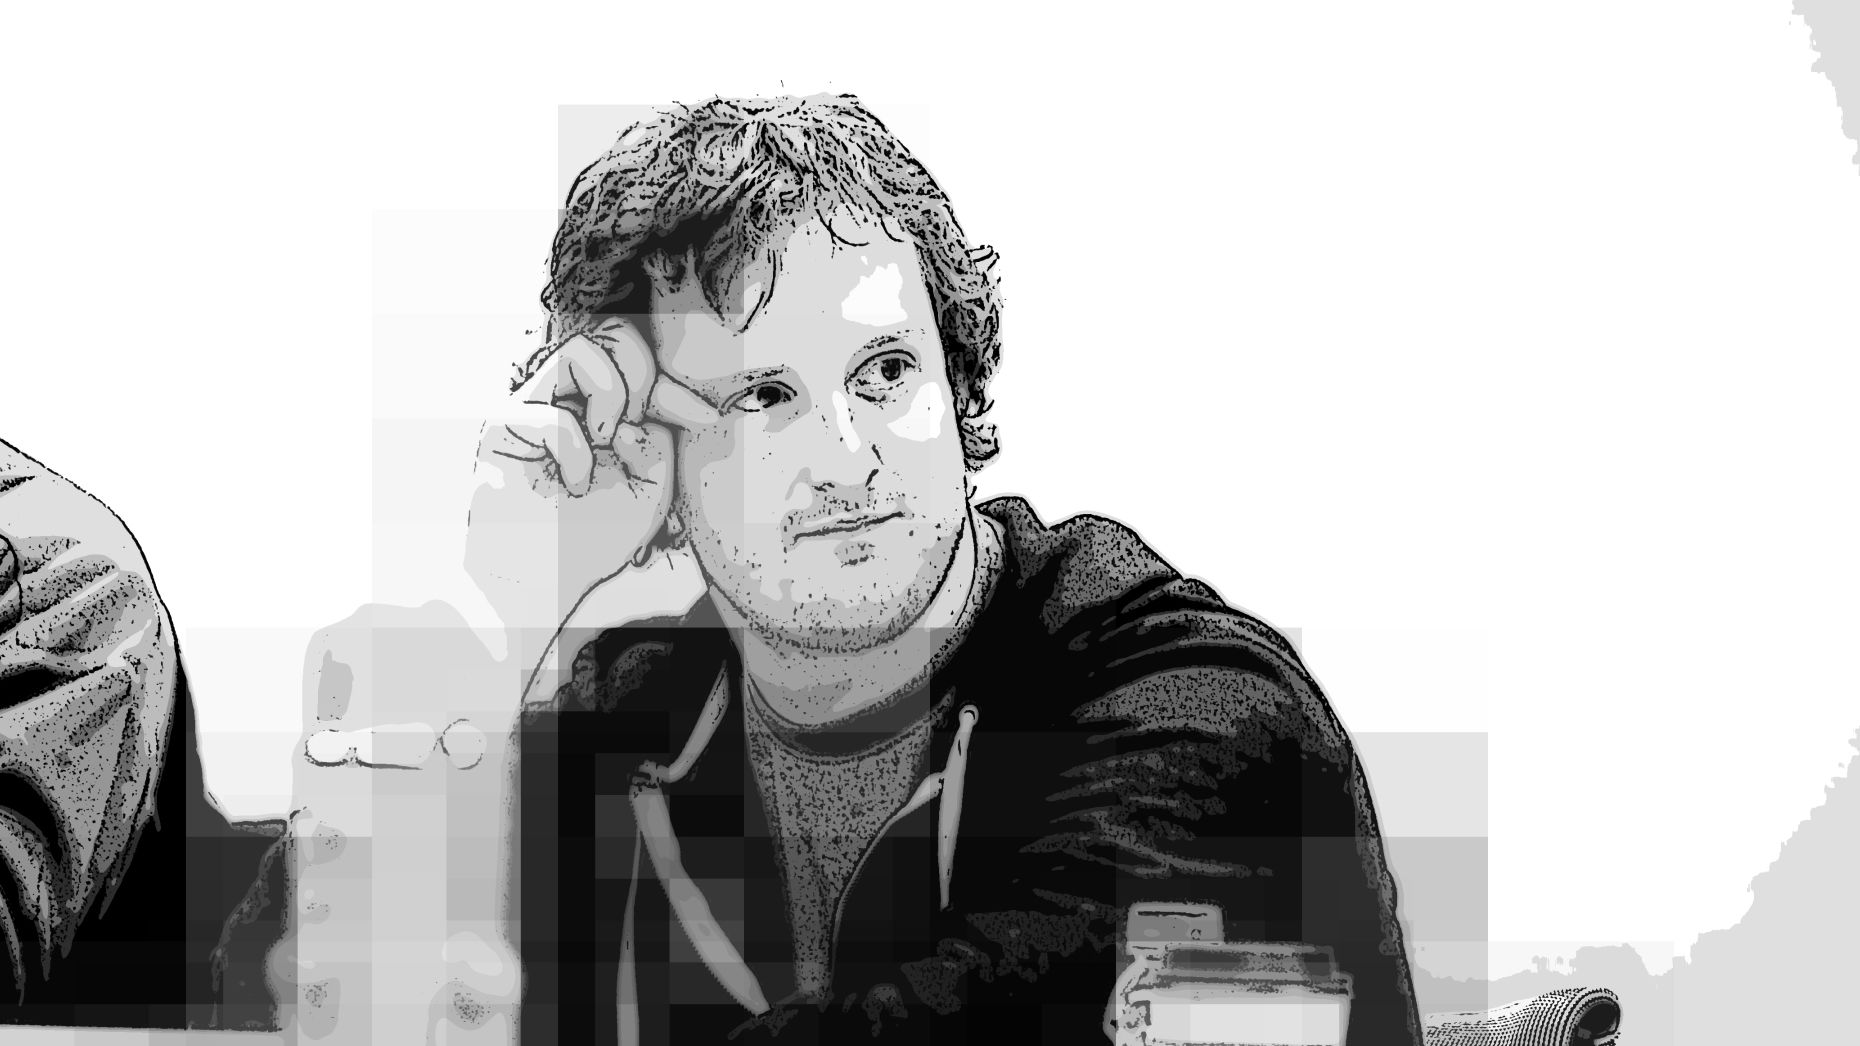 Ted Livingston, Kik's co-founder and CEO. Art by Matt Vascellaro.